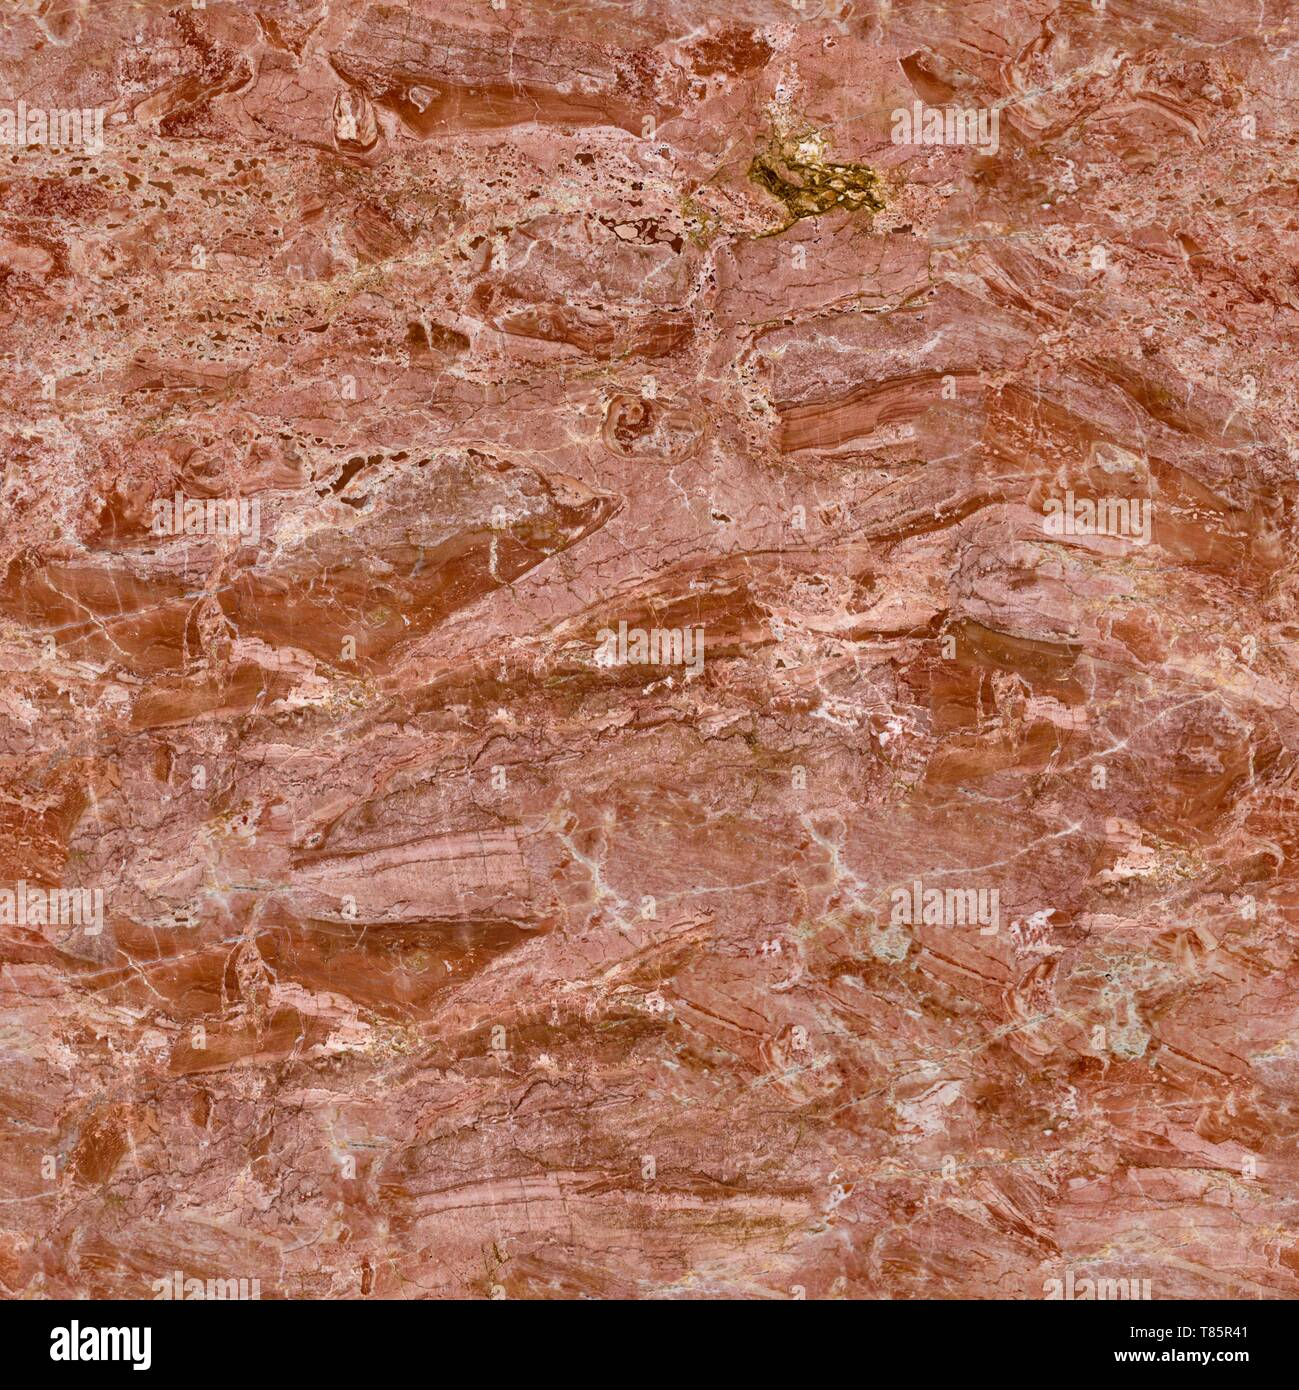 Luxury Natural Red Marble Texture Seamless Square Background Tile Ready Stock Photo Alamy